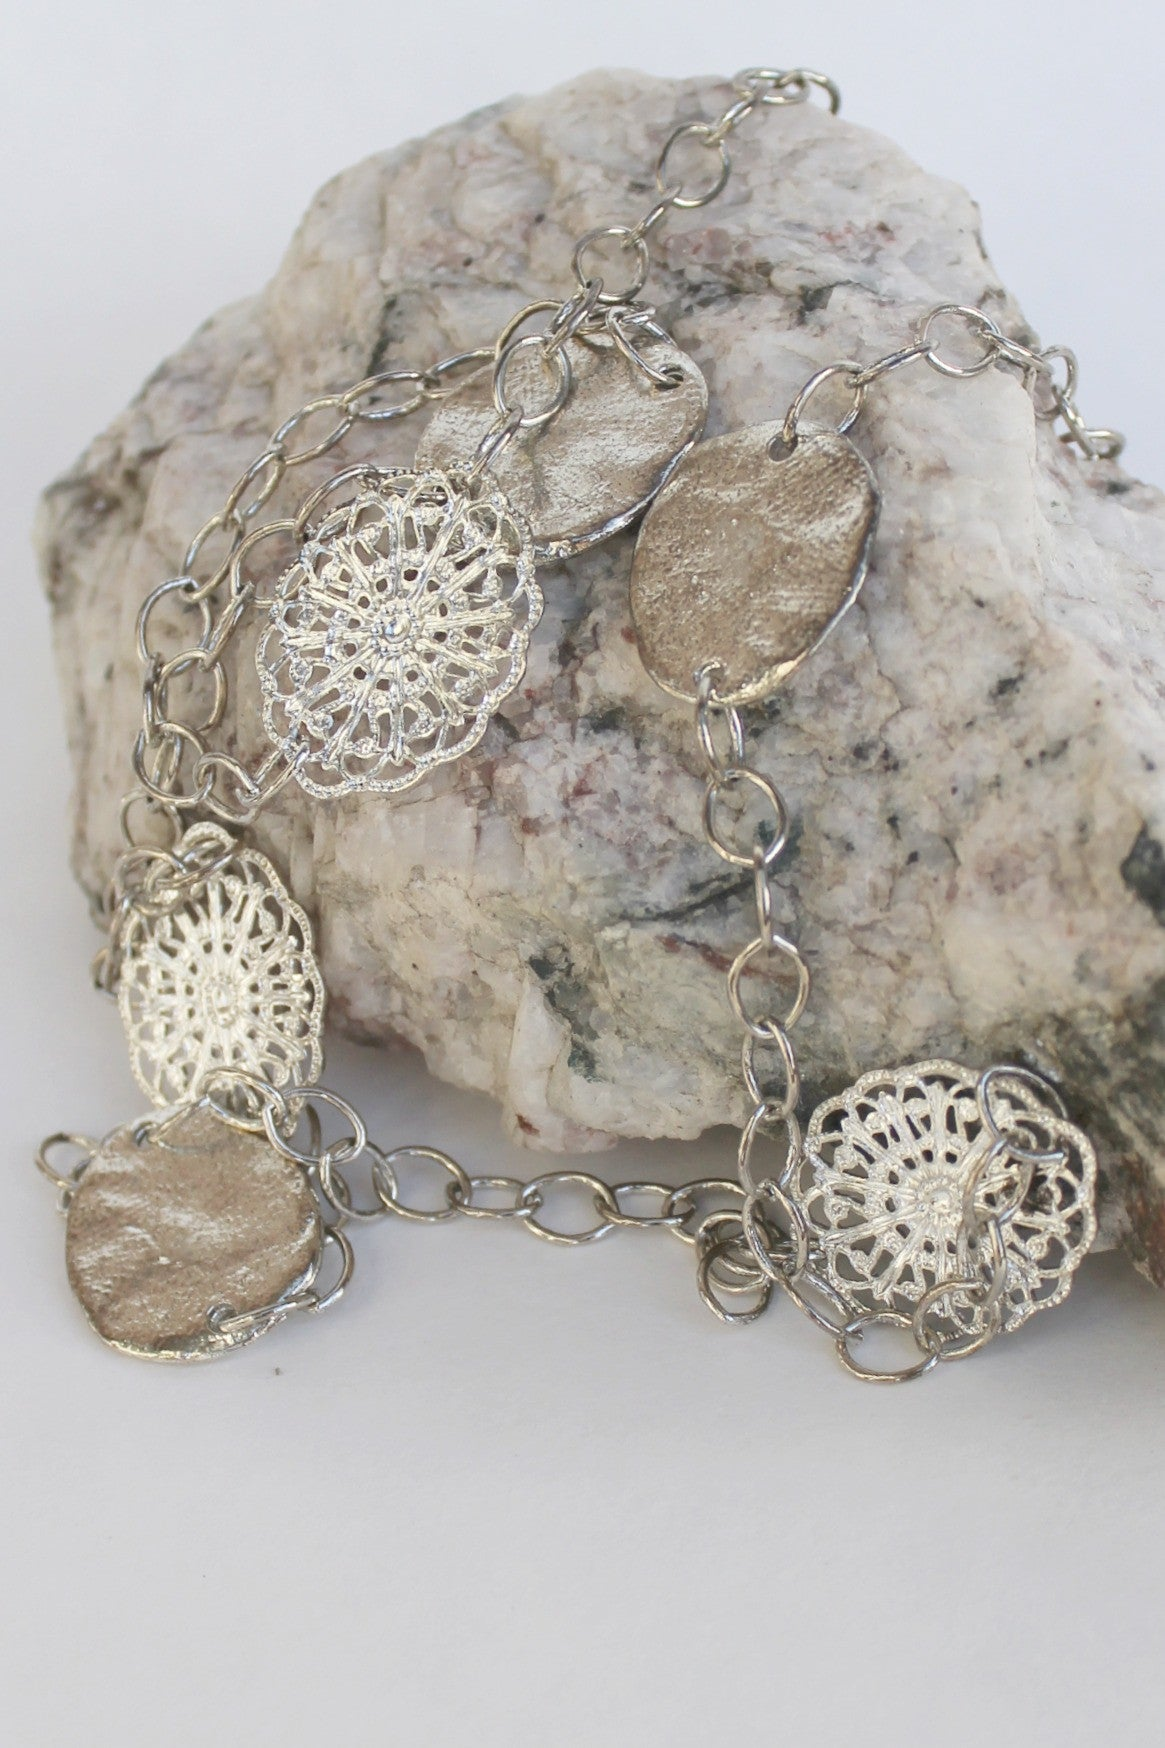 Susan Shaw Handcast Filigree Necklace, Silver